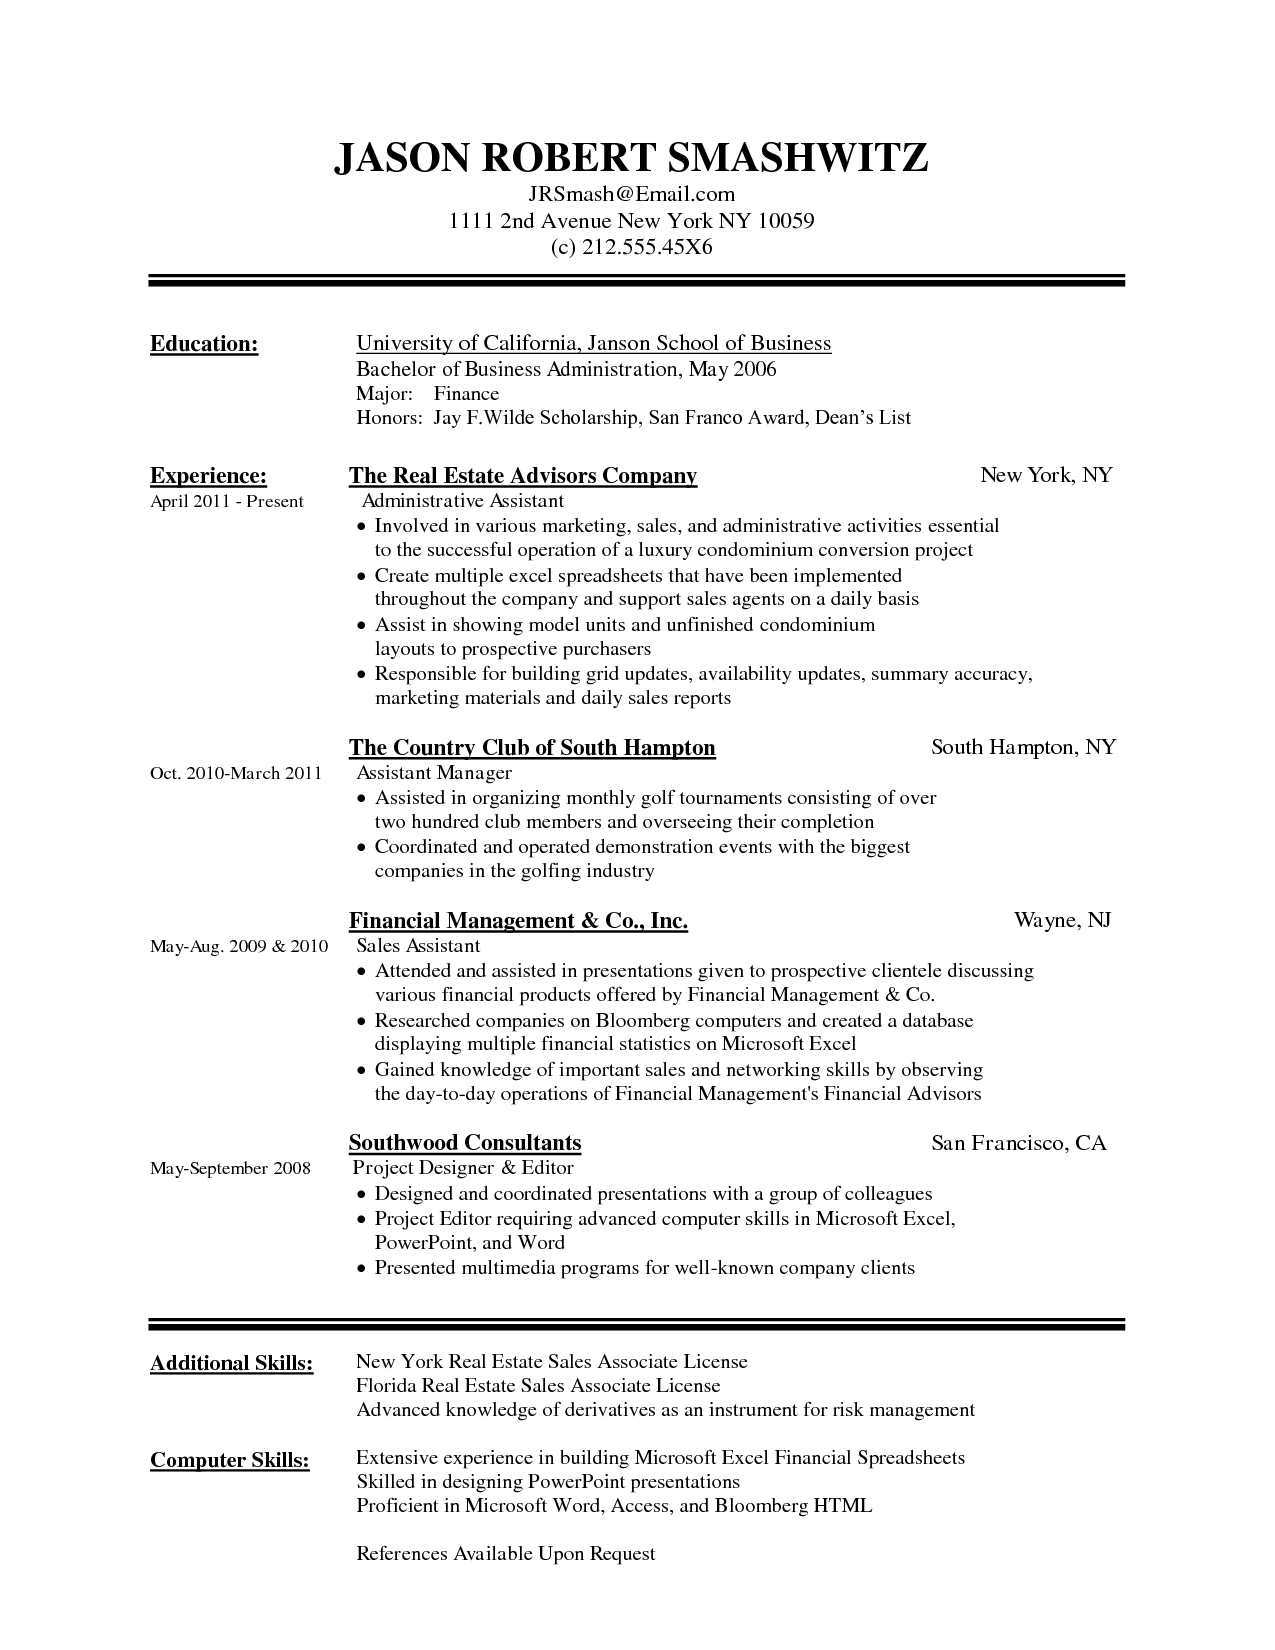 microsoft resume templates resume template cv free microsoft word format in ms 85 creative templates 2010